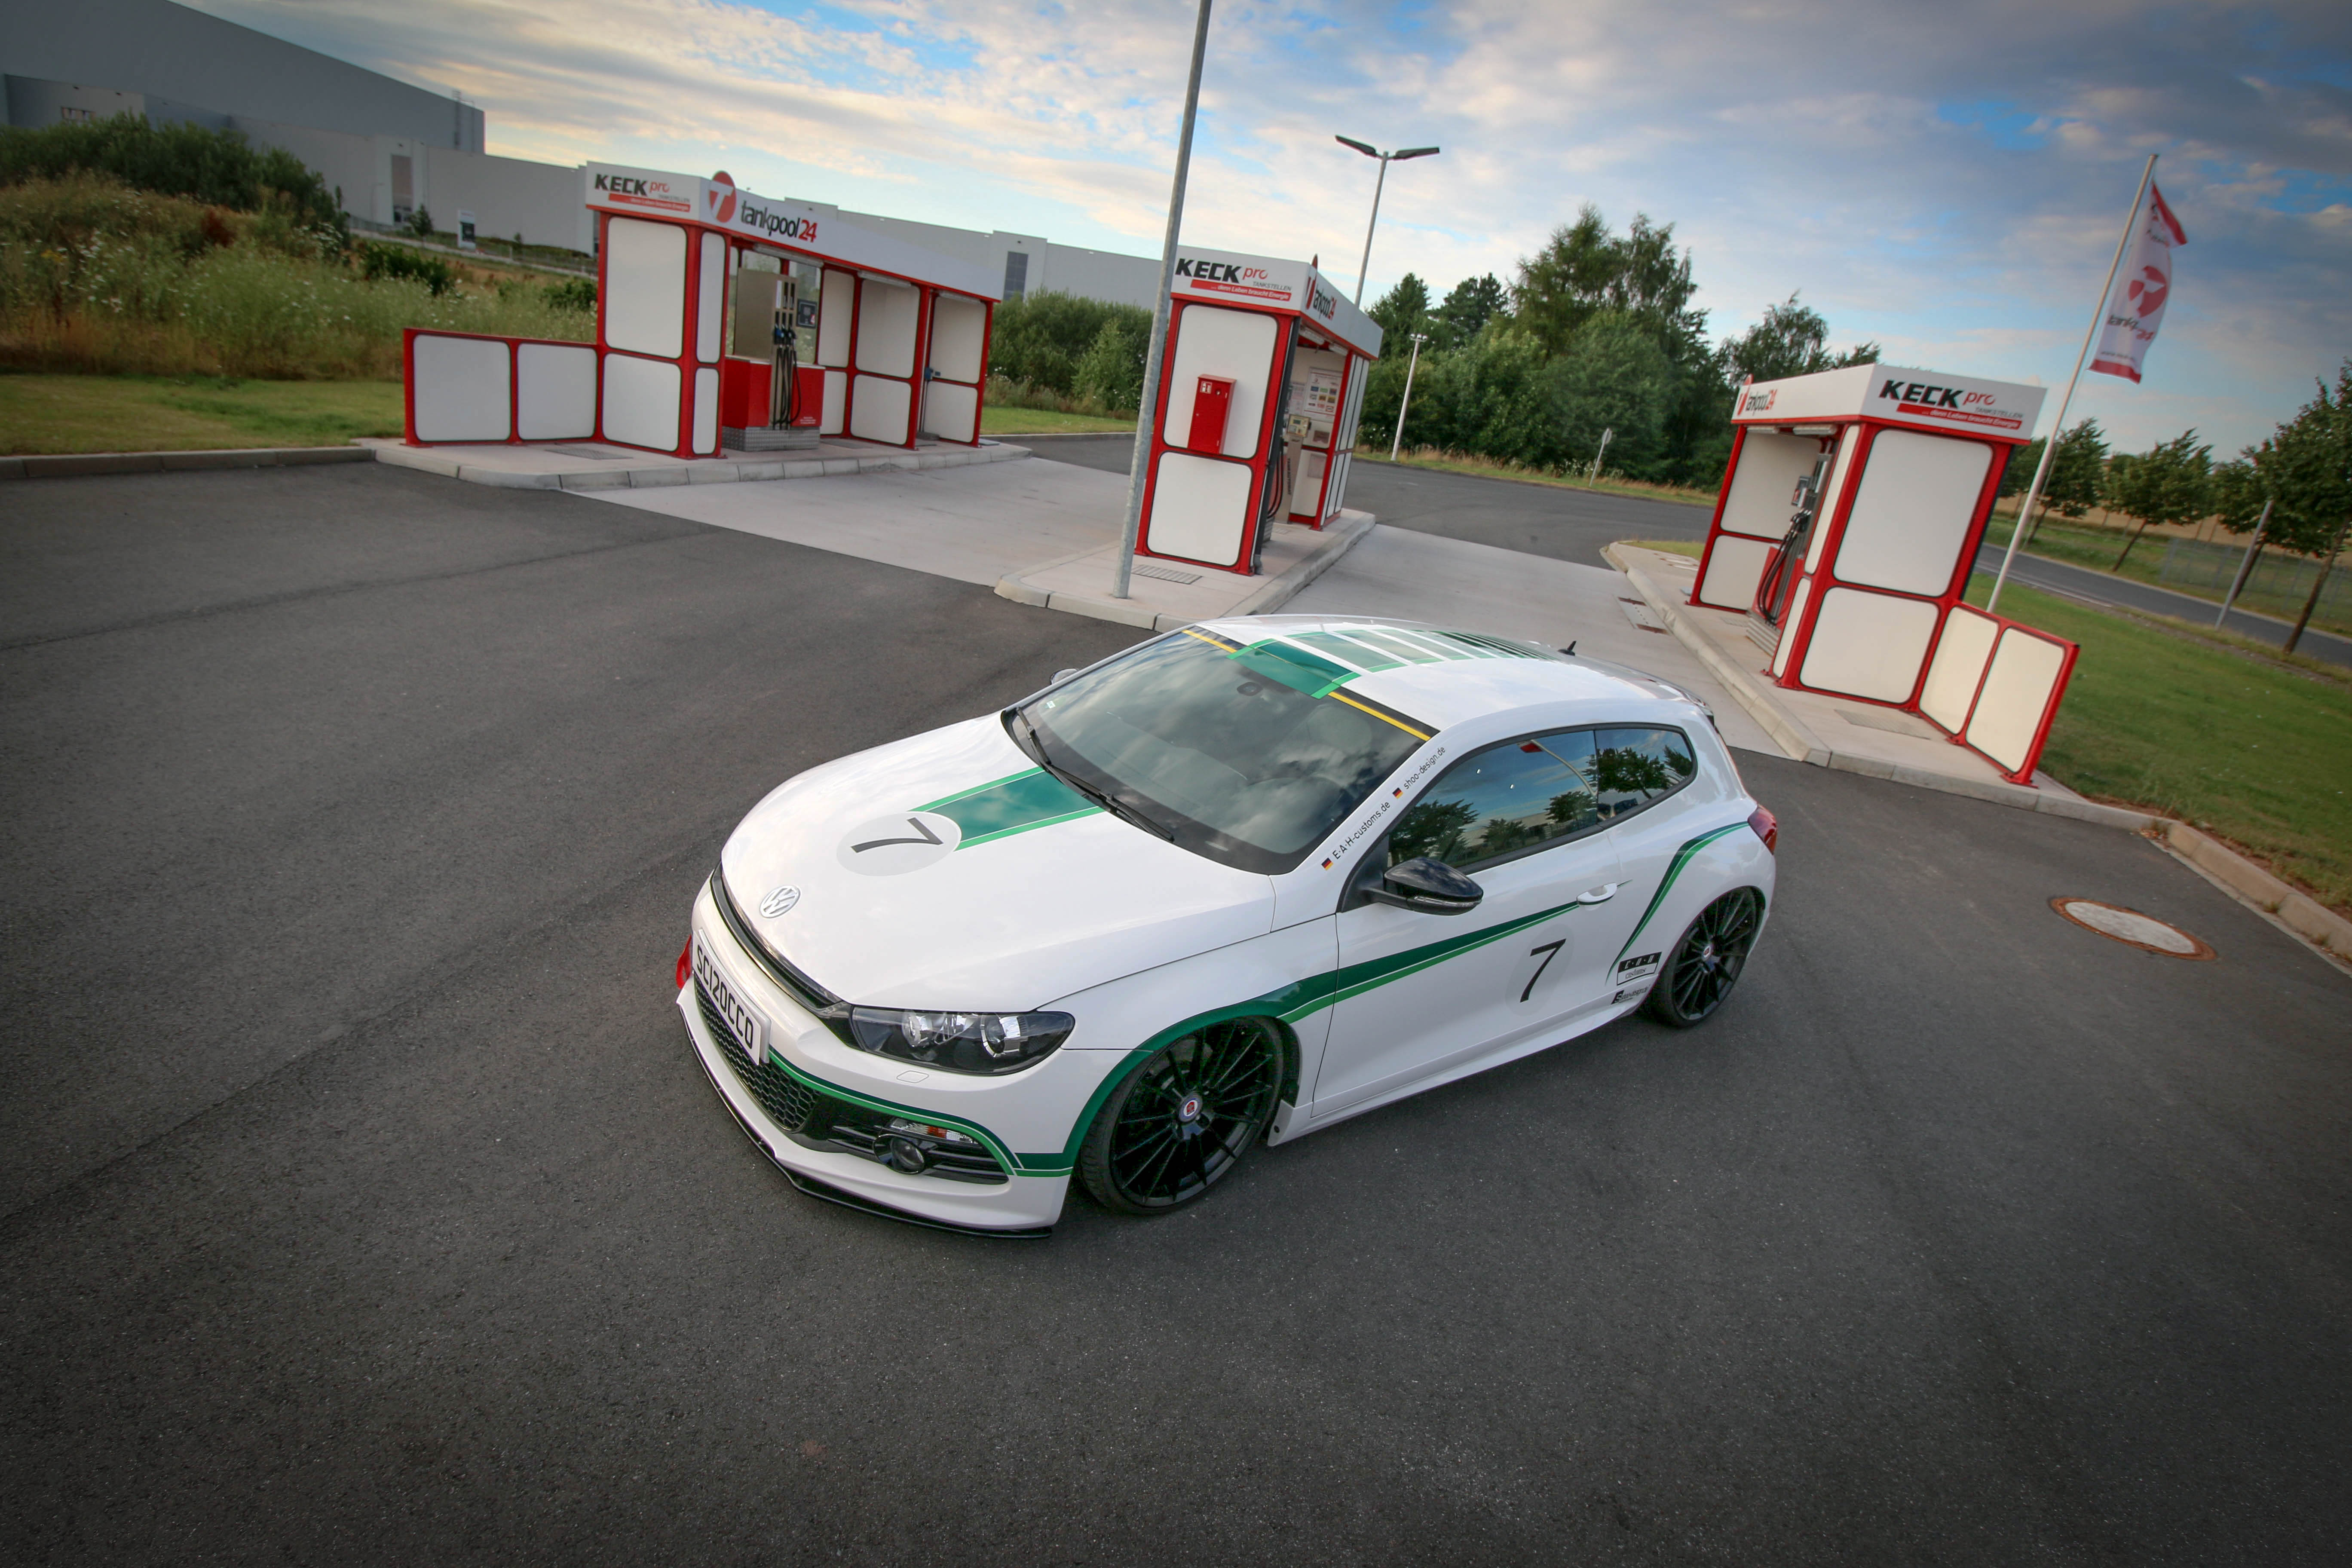 vw-scirocco-hre-ff15-kw-tuning-12